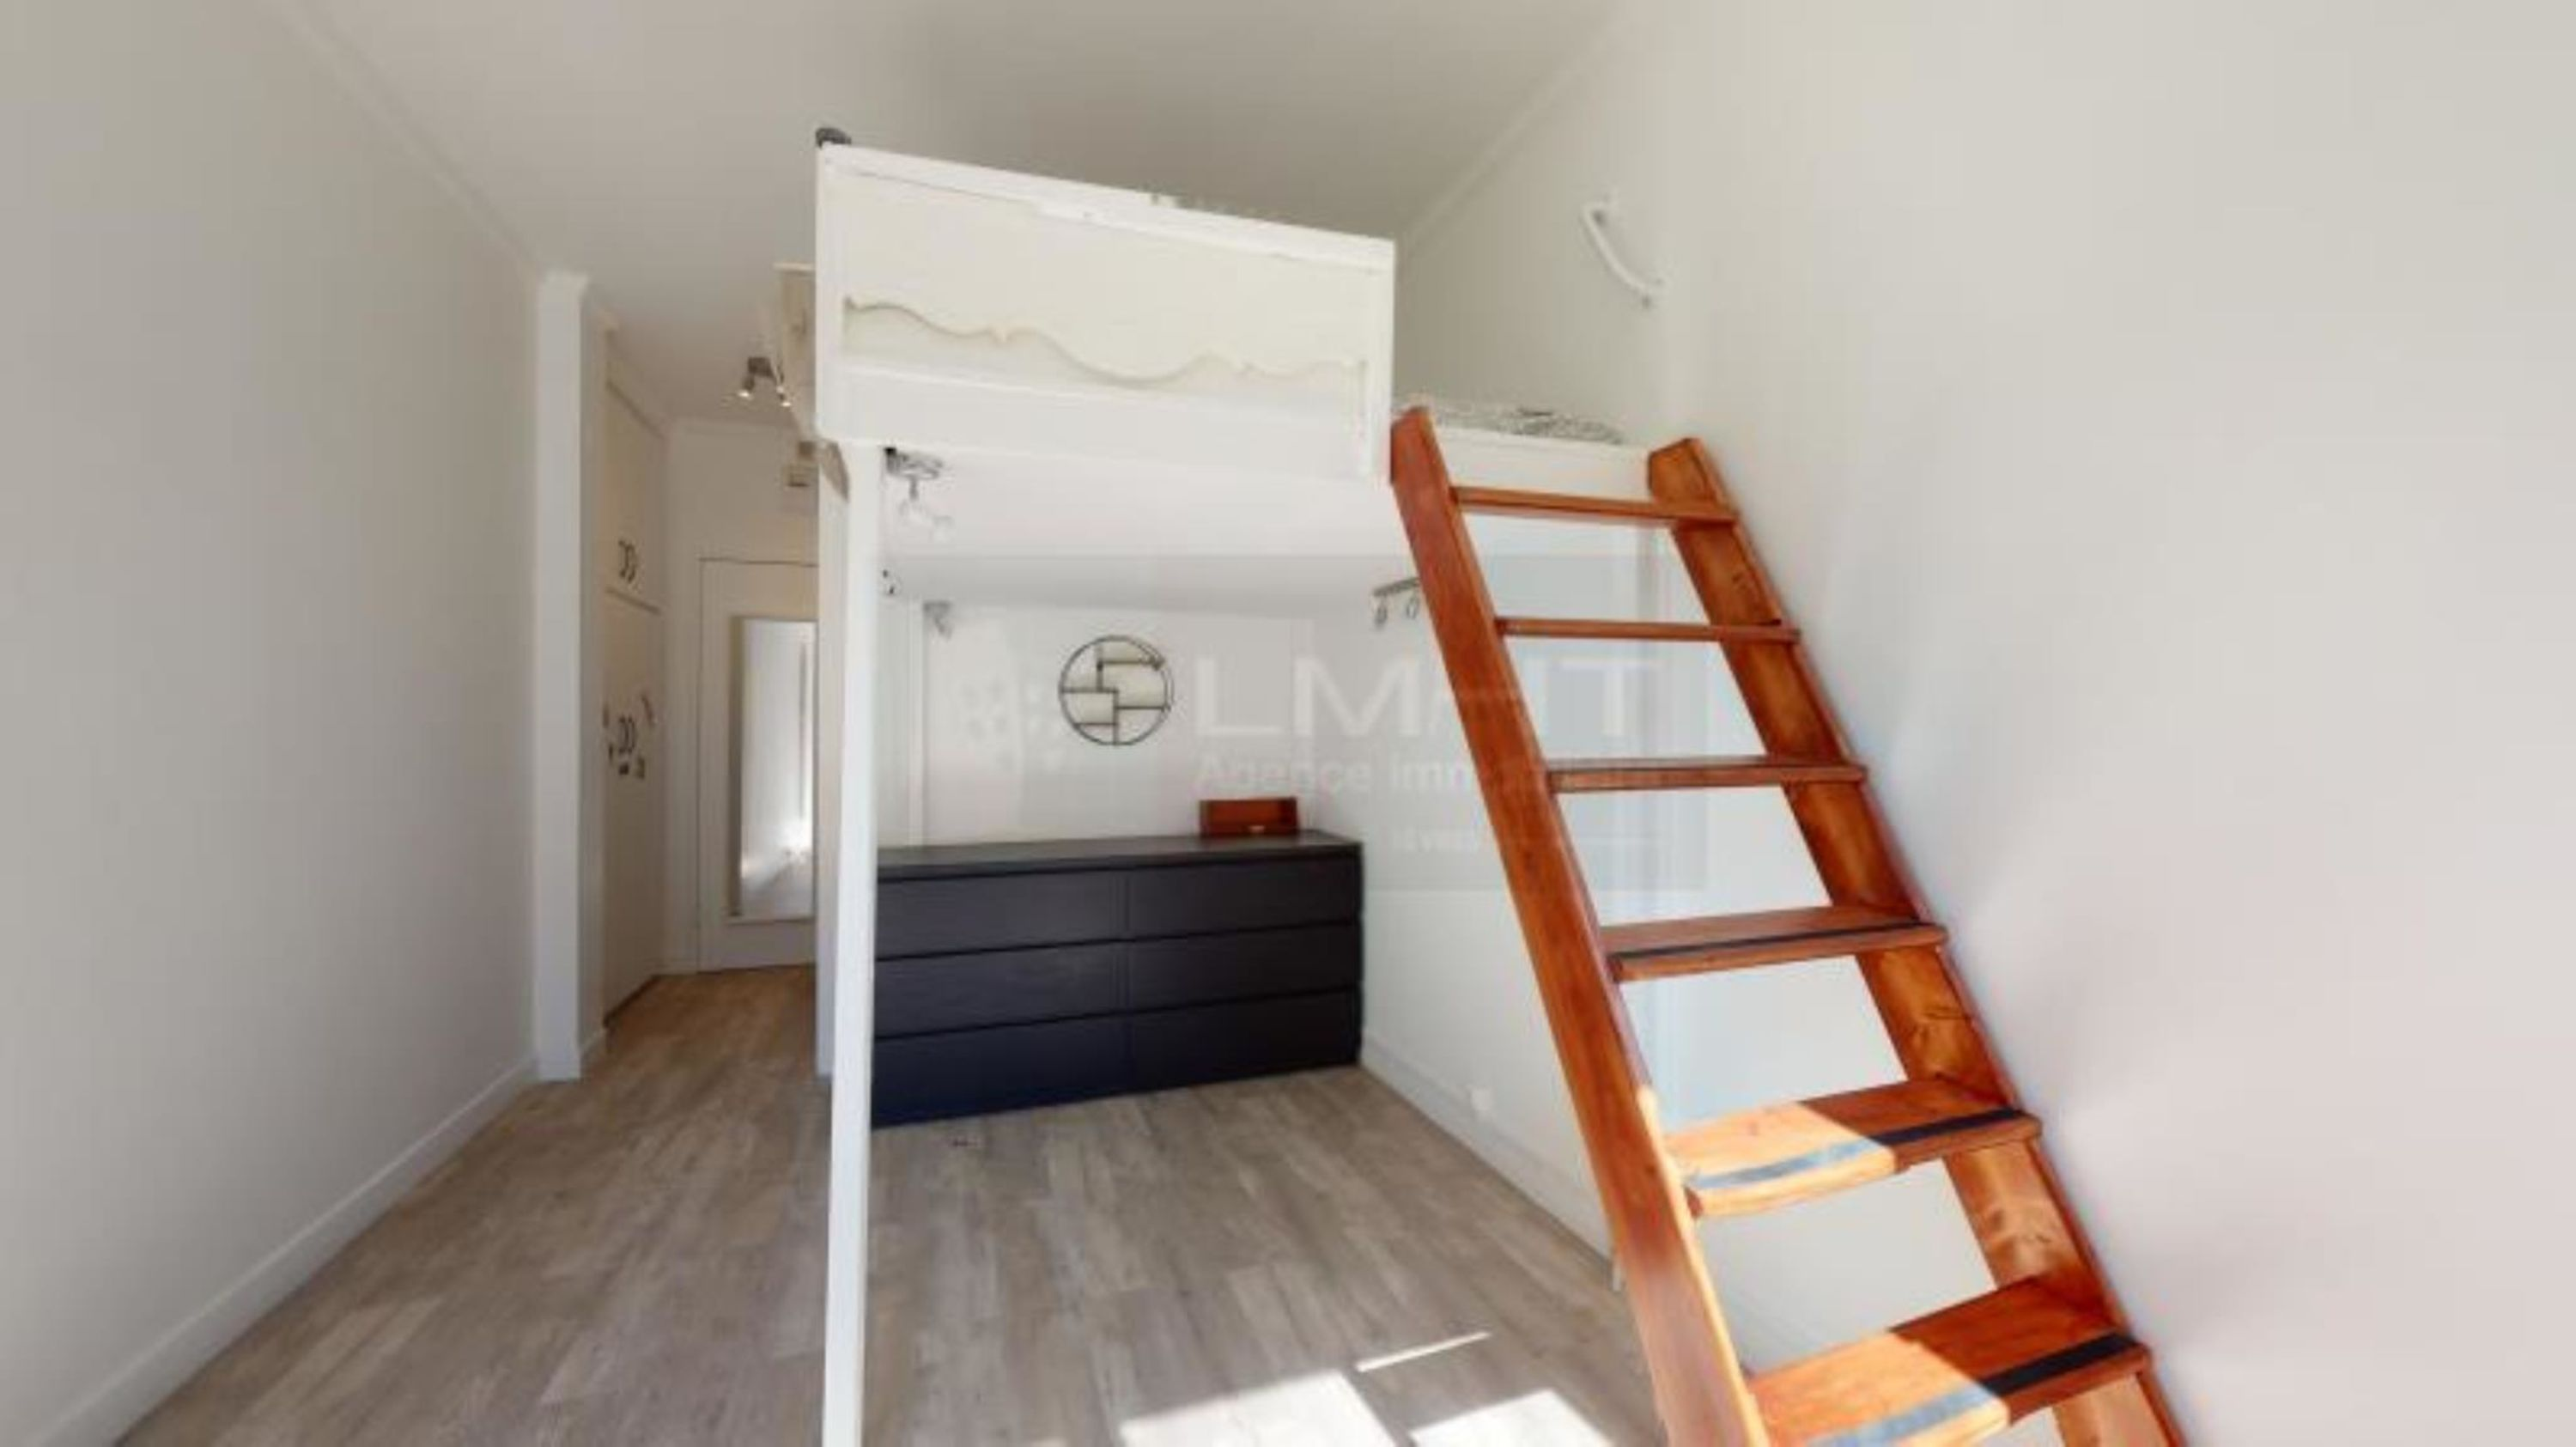 agence immobilière sevres 92 le chesnay 78 achat vente location appartement maison immobilier LMHT ANF GSBGJBES